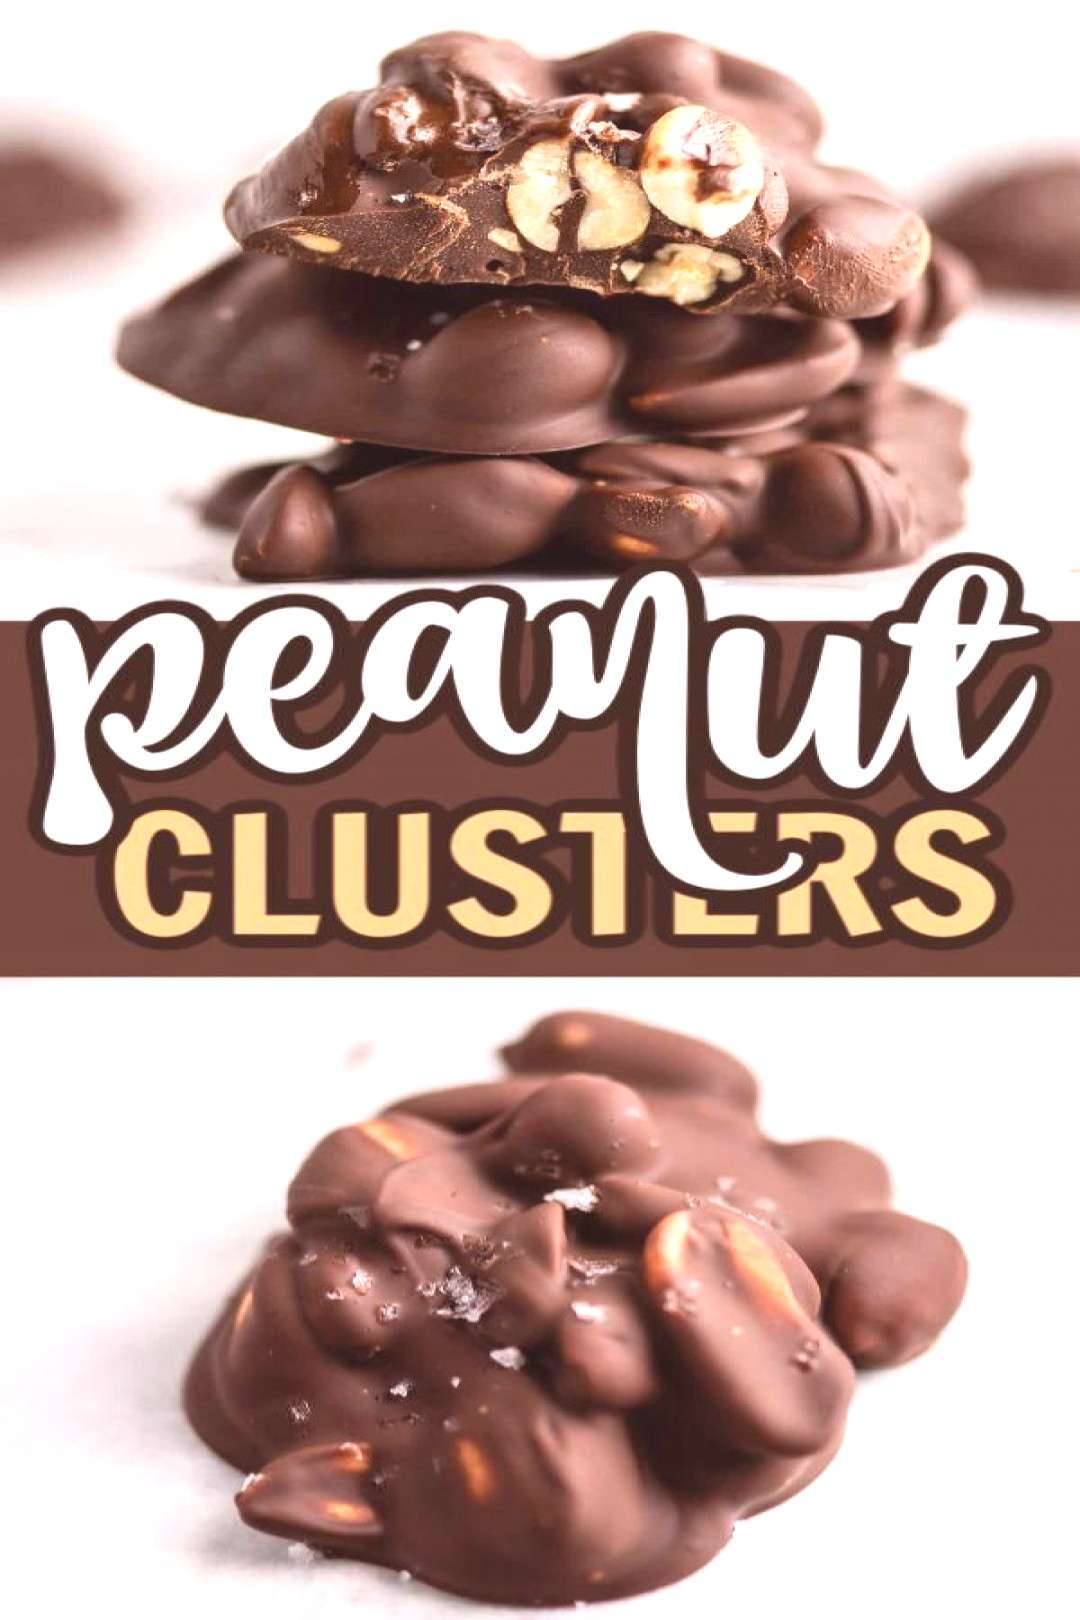 All you need is 3 ingredients to make this holiday favorite - peanut clusters! Naturally vegan, glu